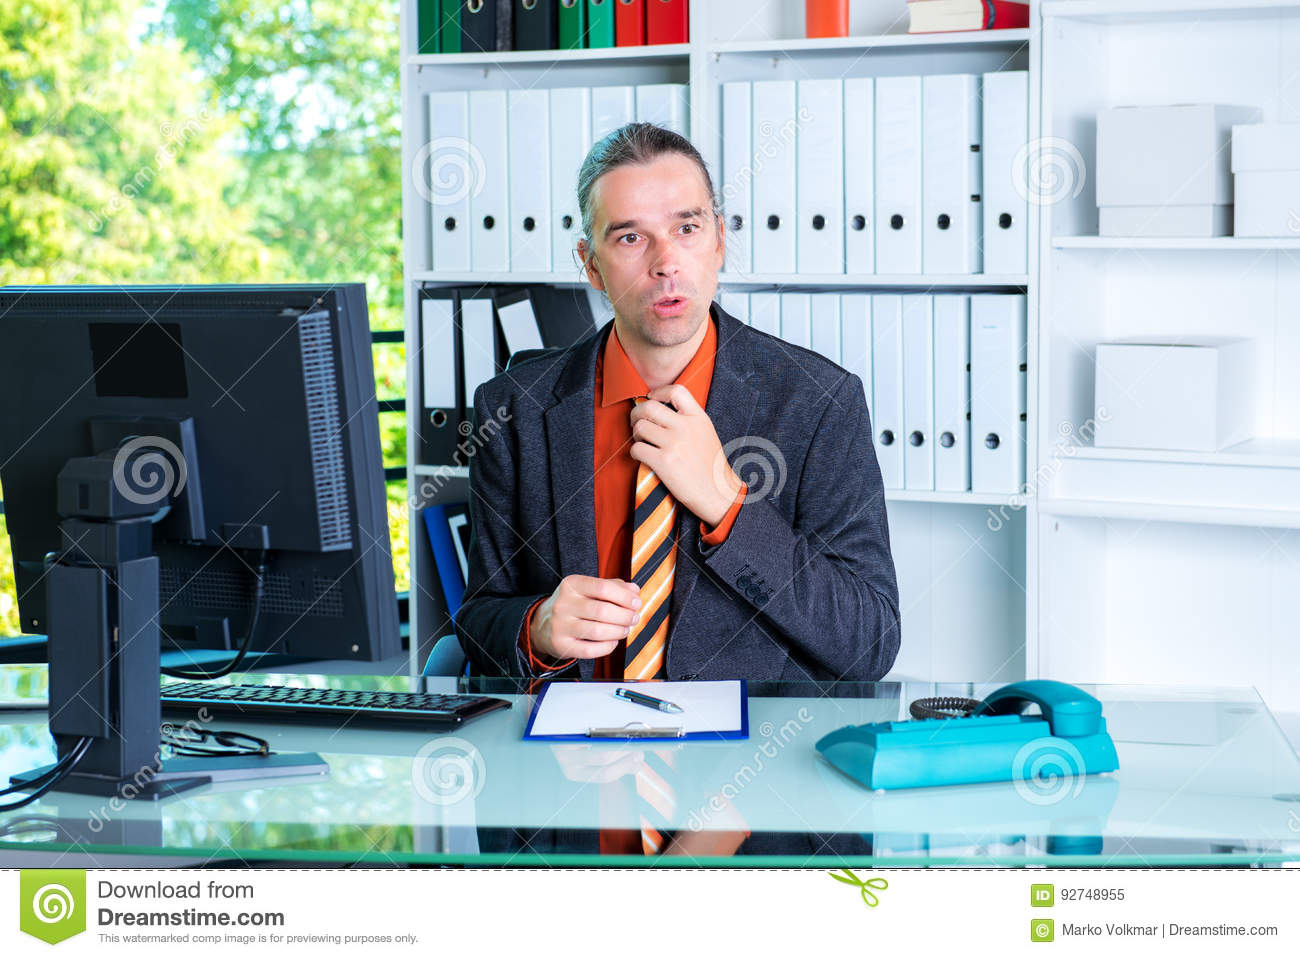 Hot office pic Outfits Business Man Behind His Desk In Summerly Hot Office The Big Lead Business Man Behind His Desk In Summerly Hot Office Stock Image